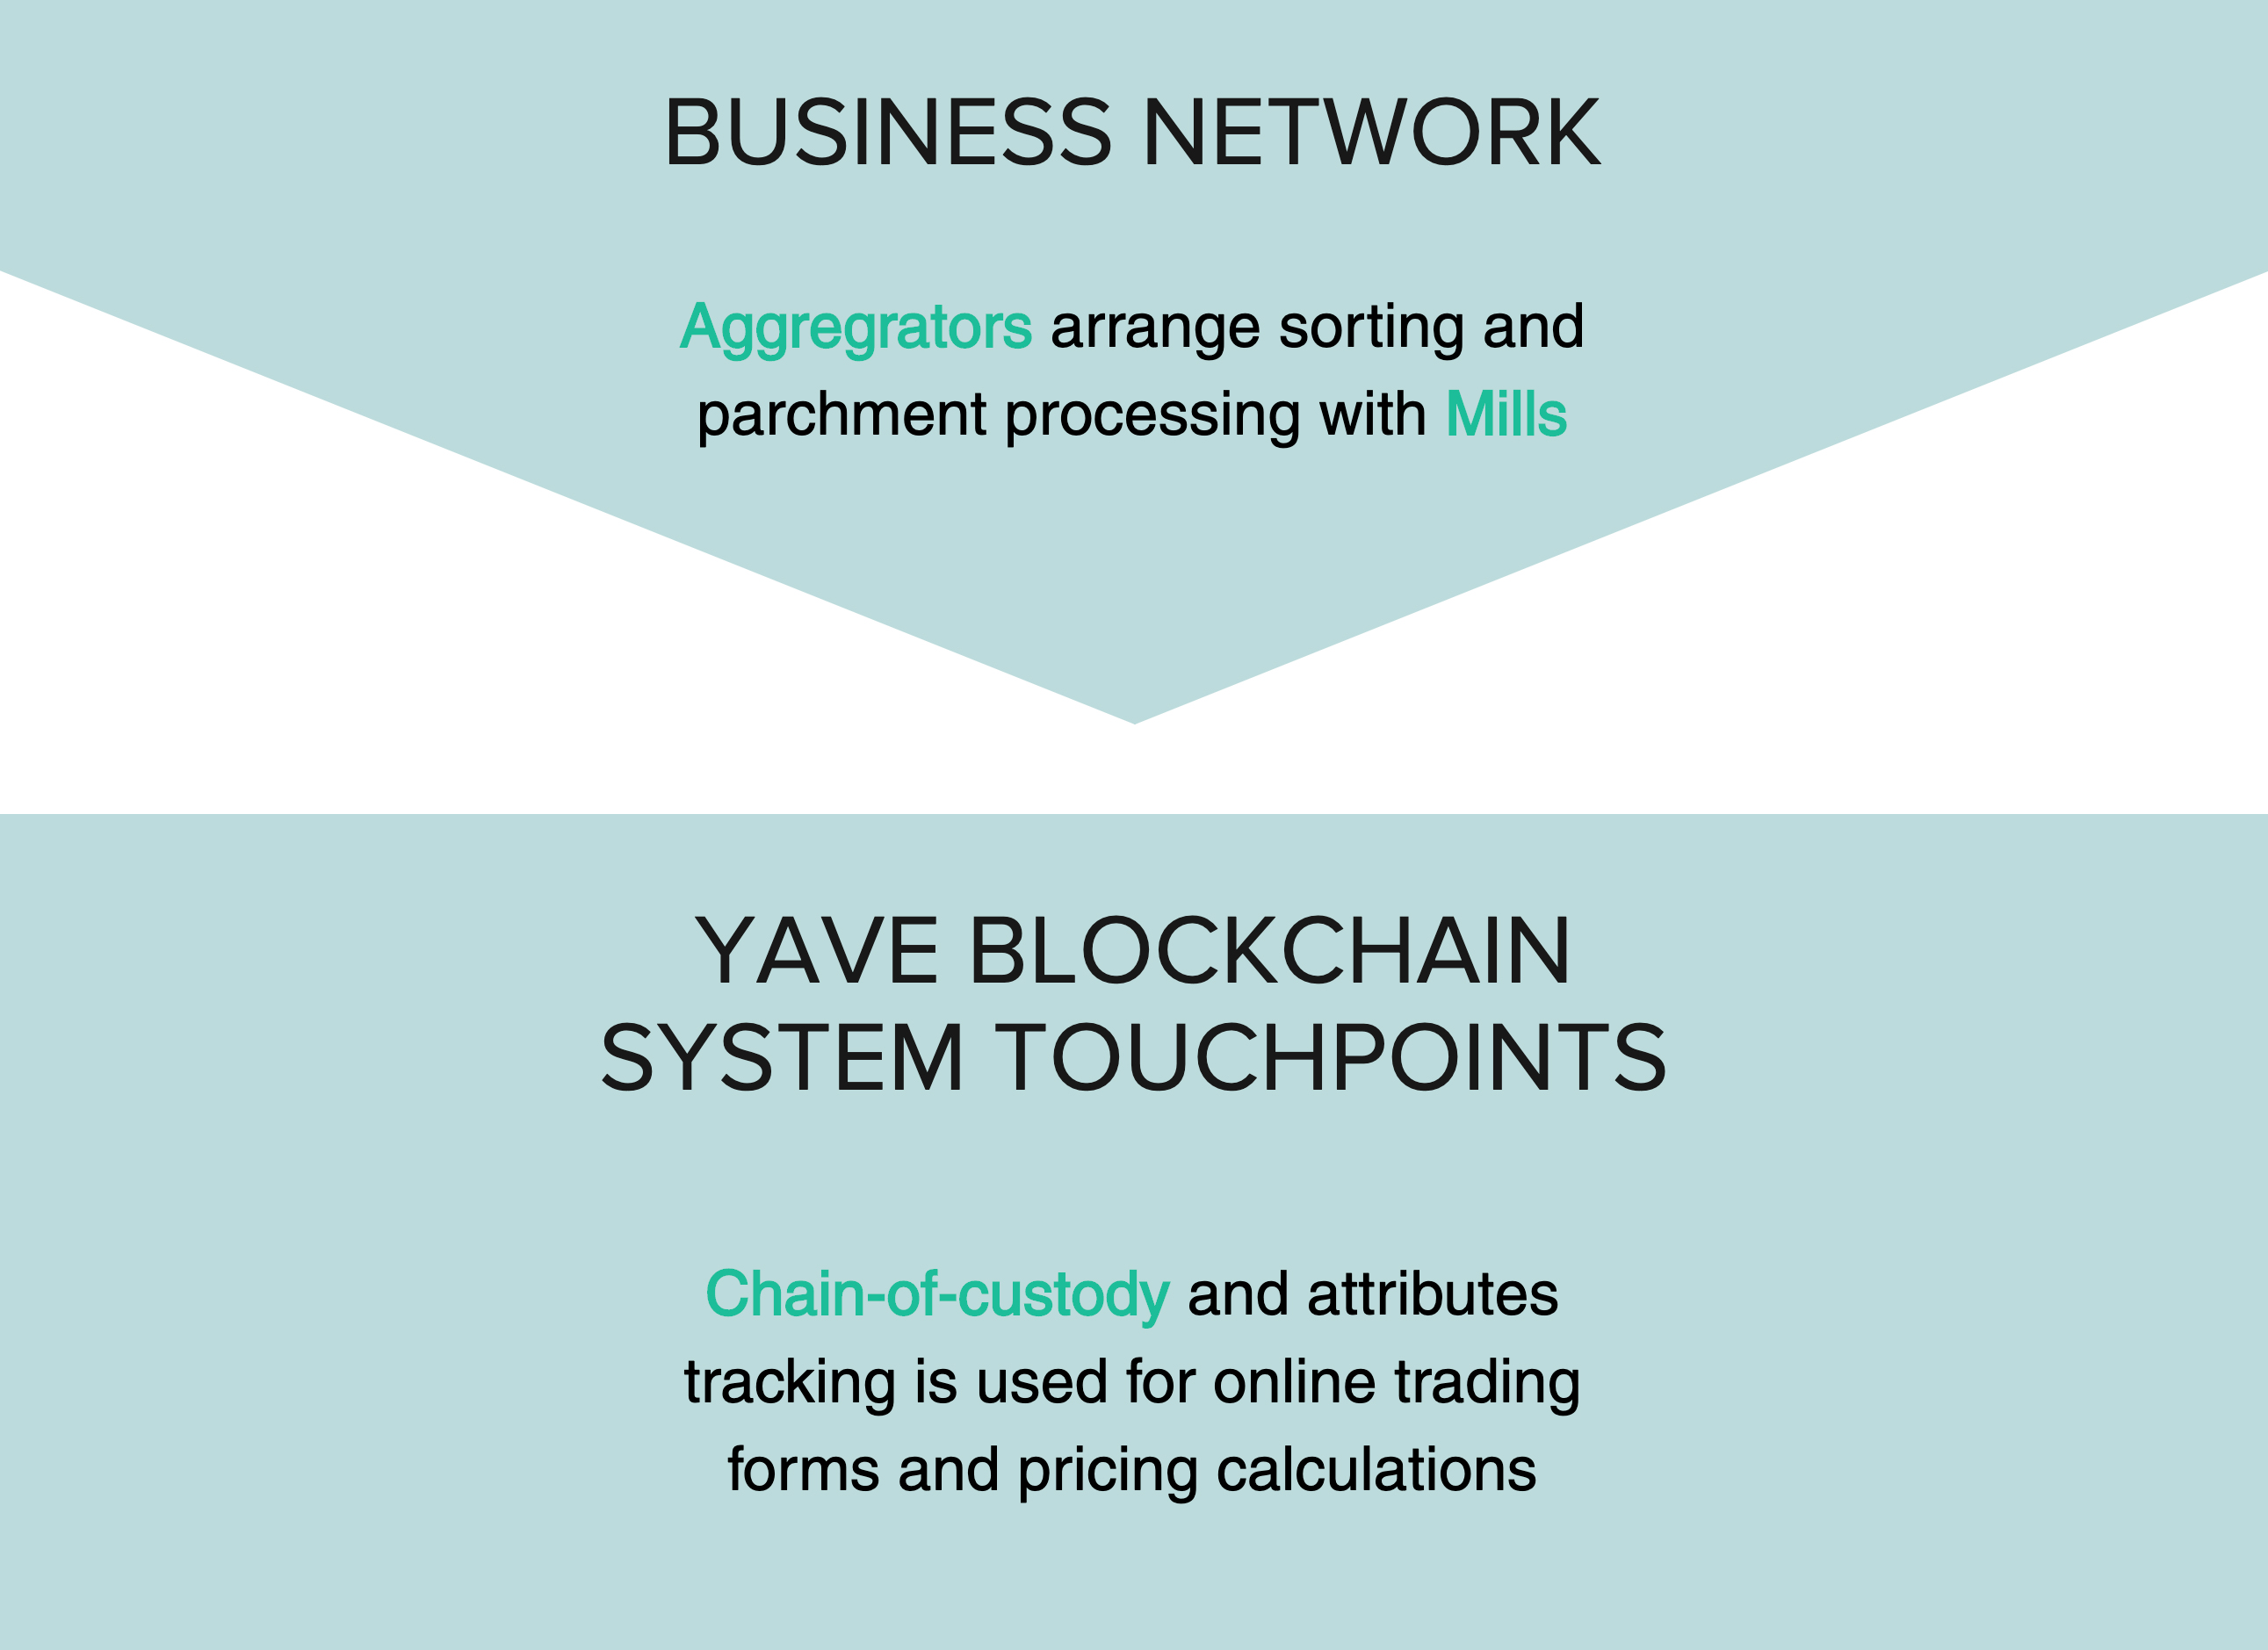 Business Network: Aggregators arrange sorting and parchment processing with Mills > Yave Blockchain System Touchpoints: Chain-of-custody and attributes tracking is used for online trading forms and pricing calculations